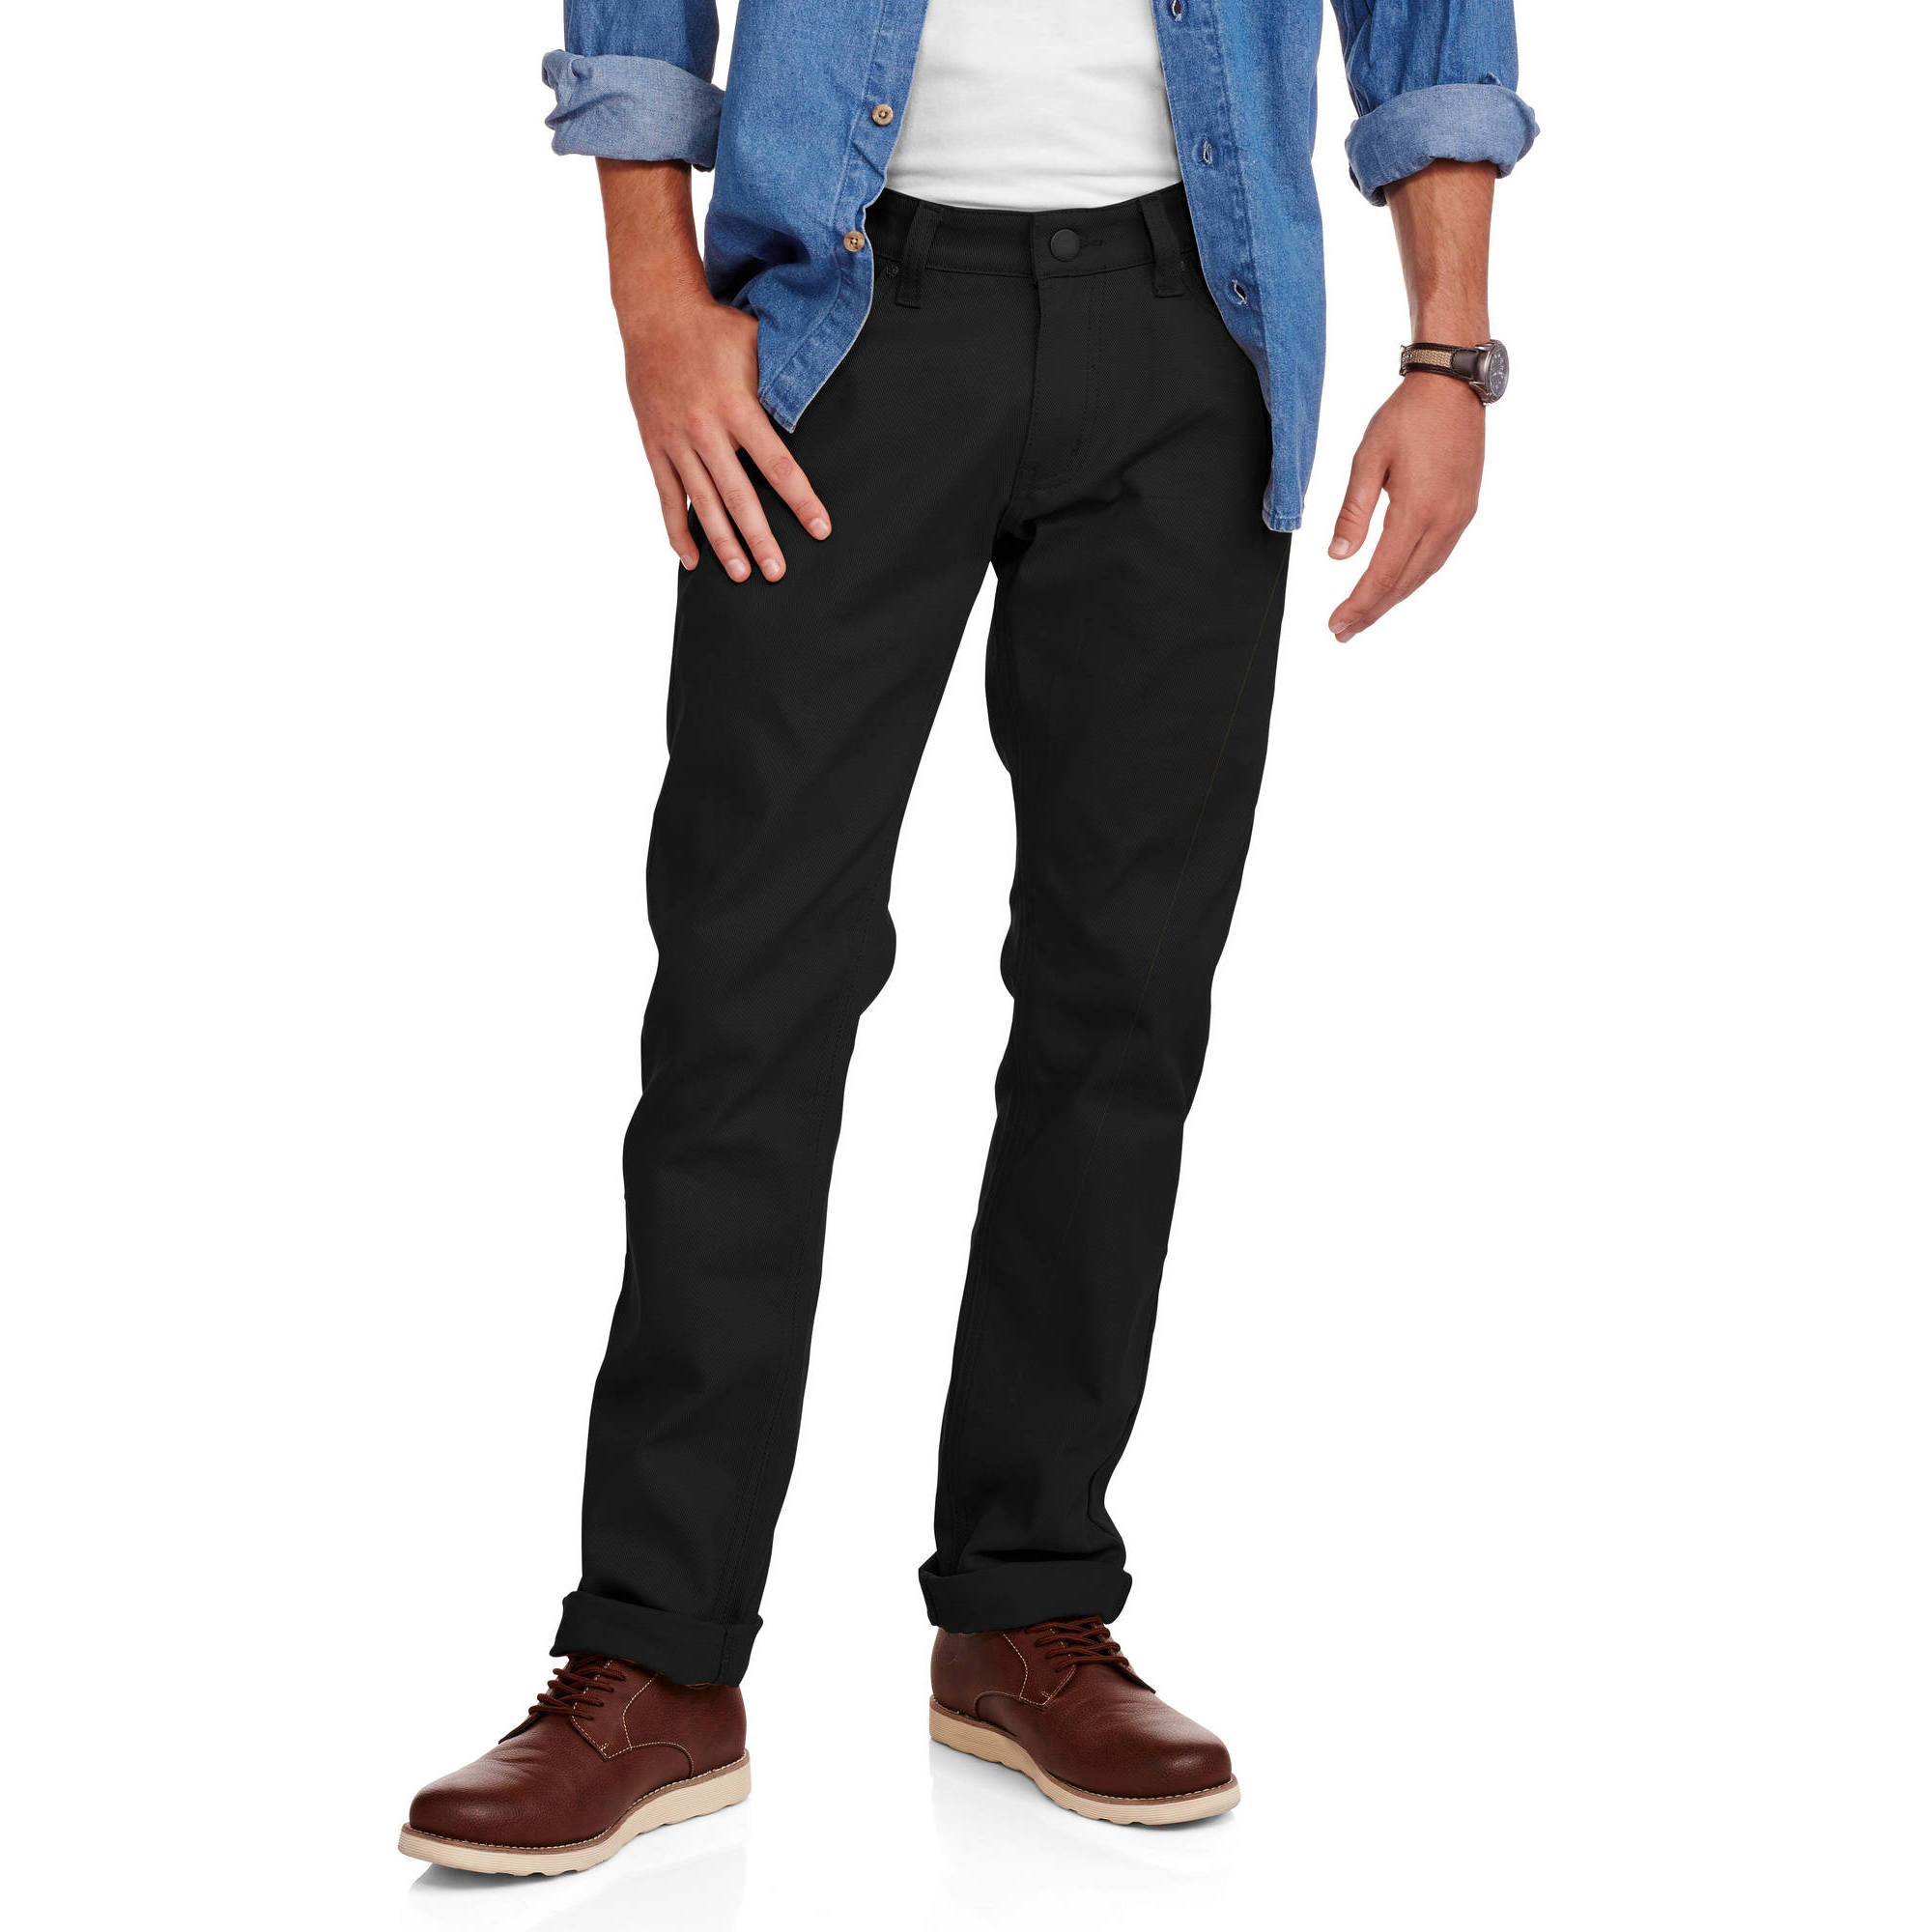 Men's Slim Straight Bull Denim Jeans by Generic